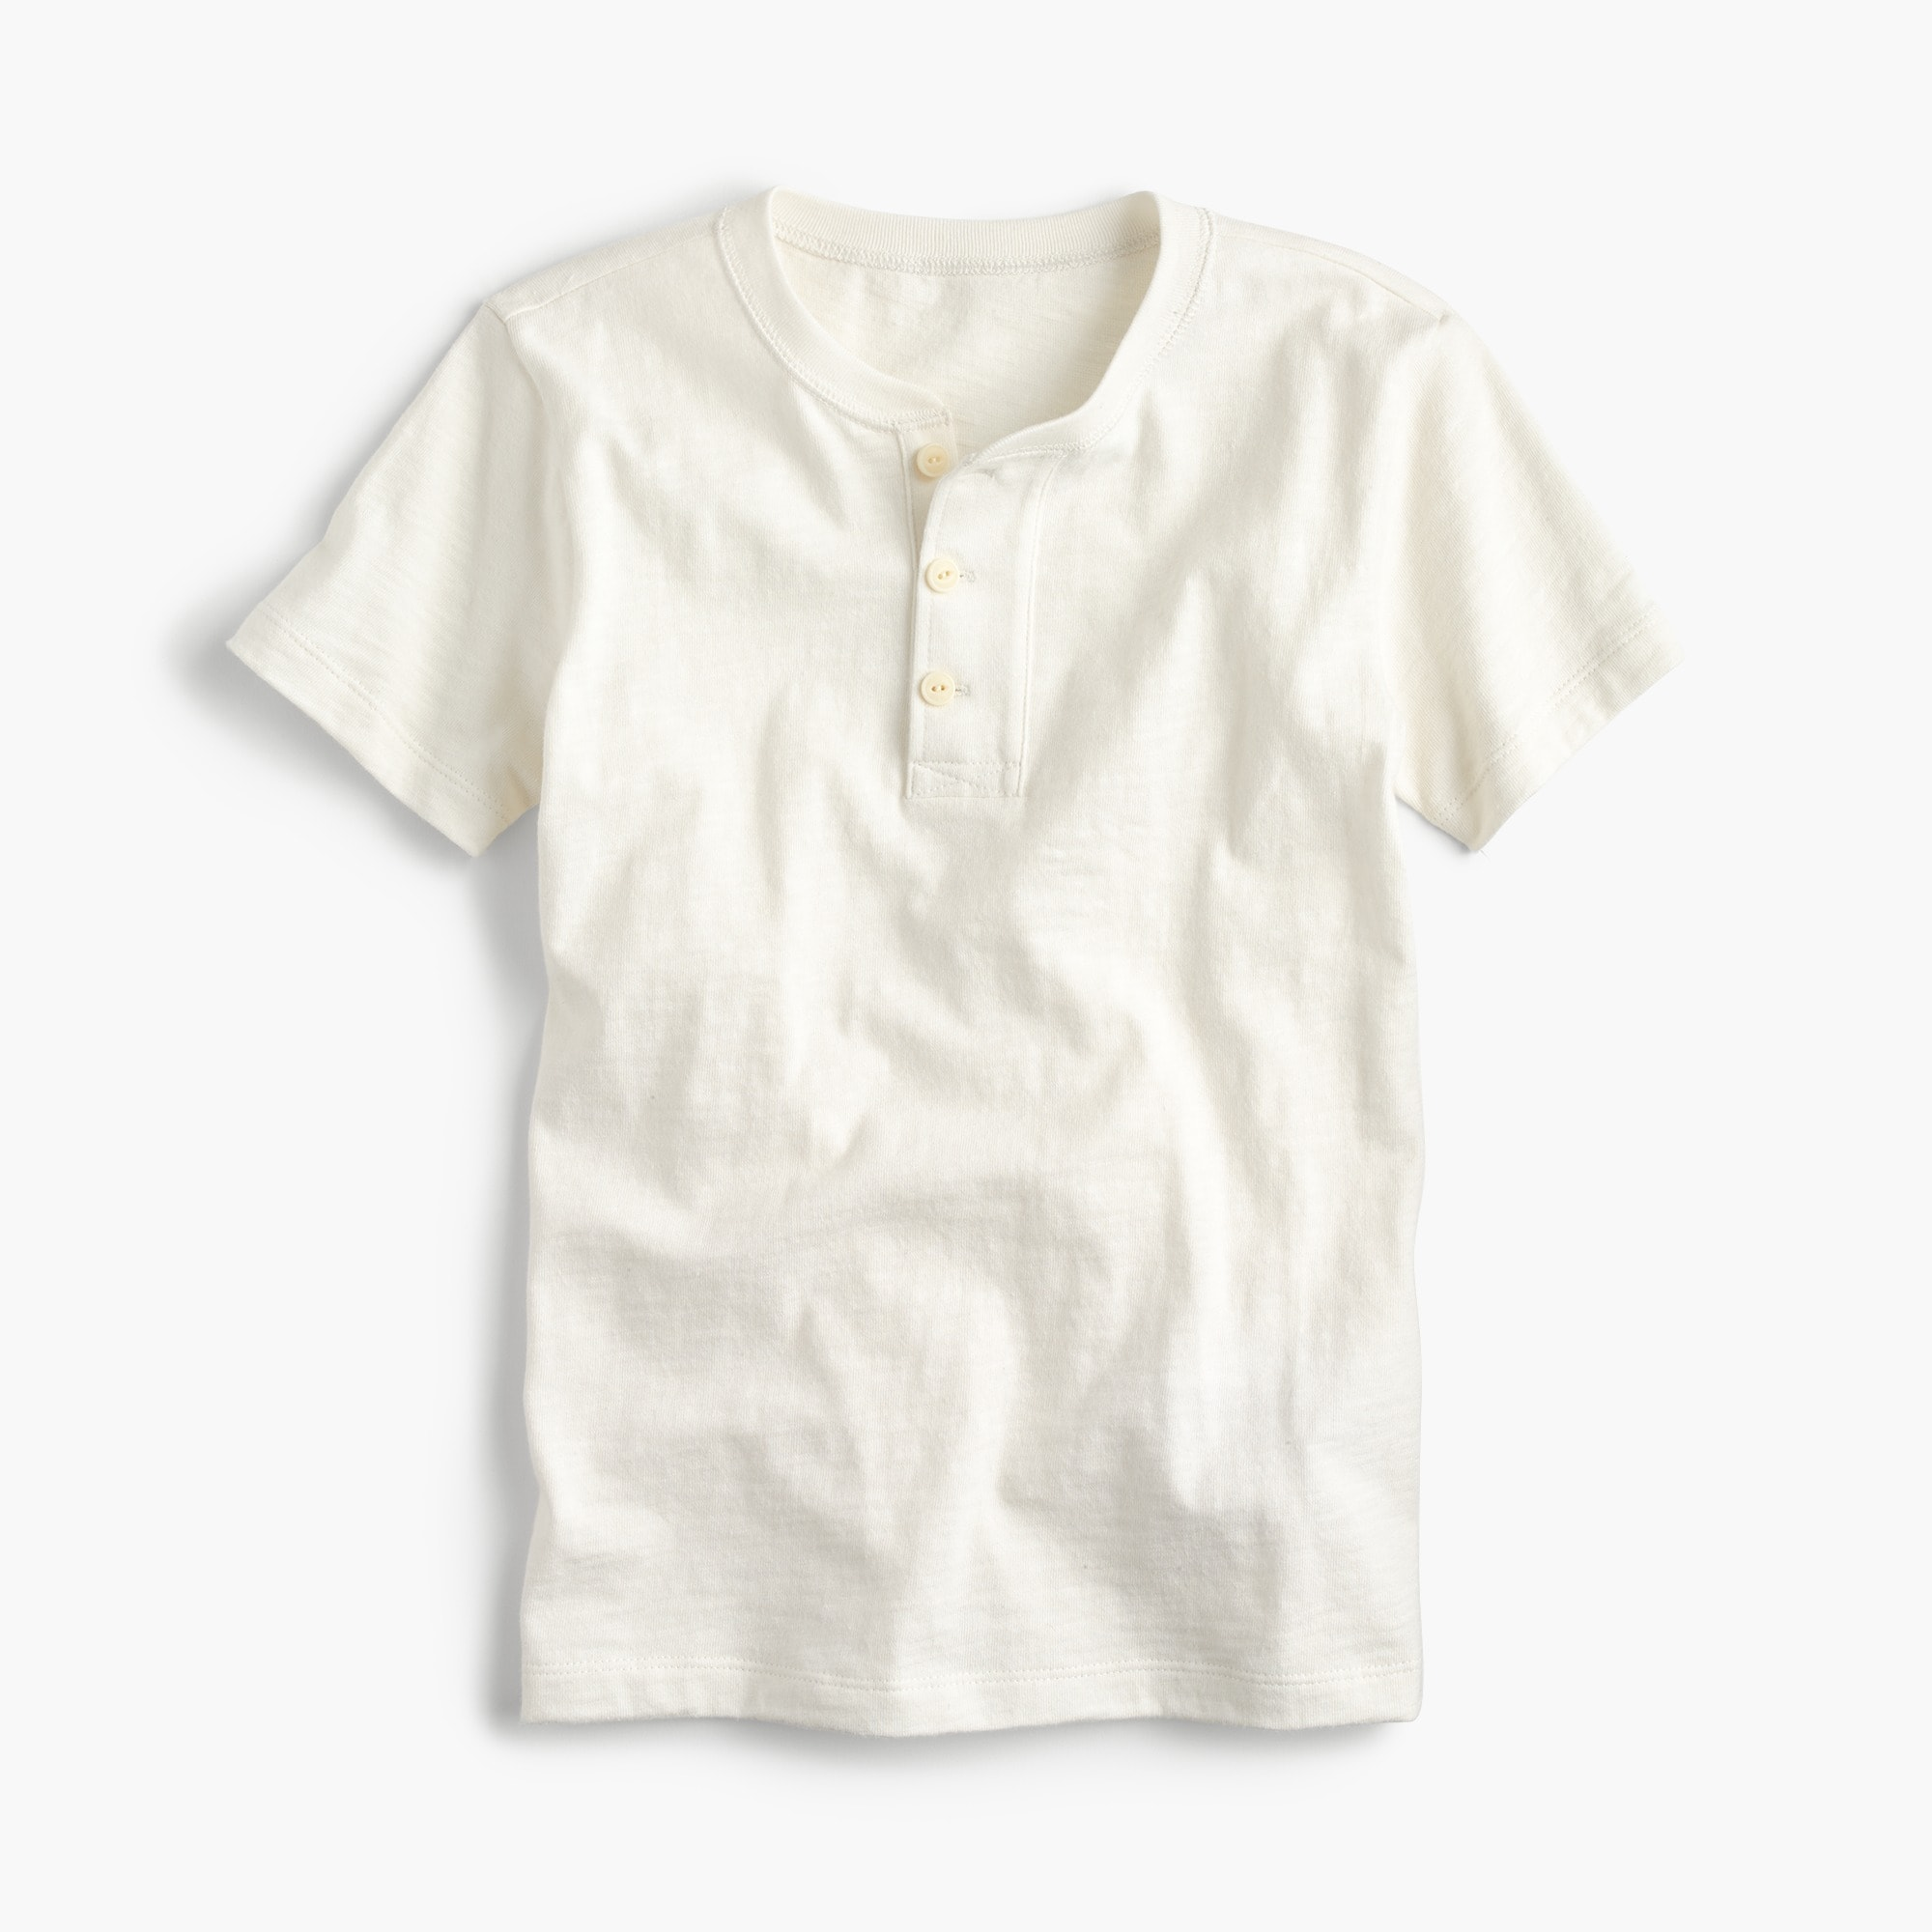 Boys' short-sleeve henley shirt boy new arrivals c